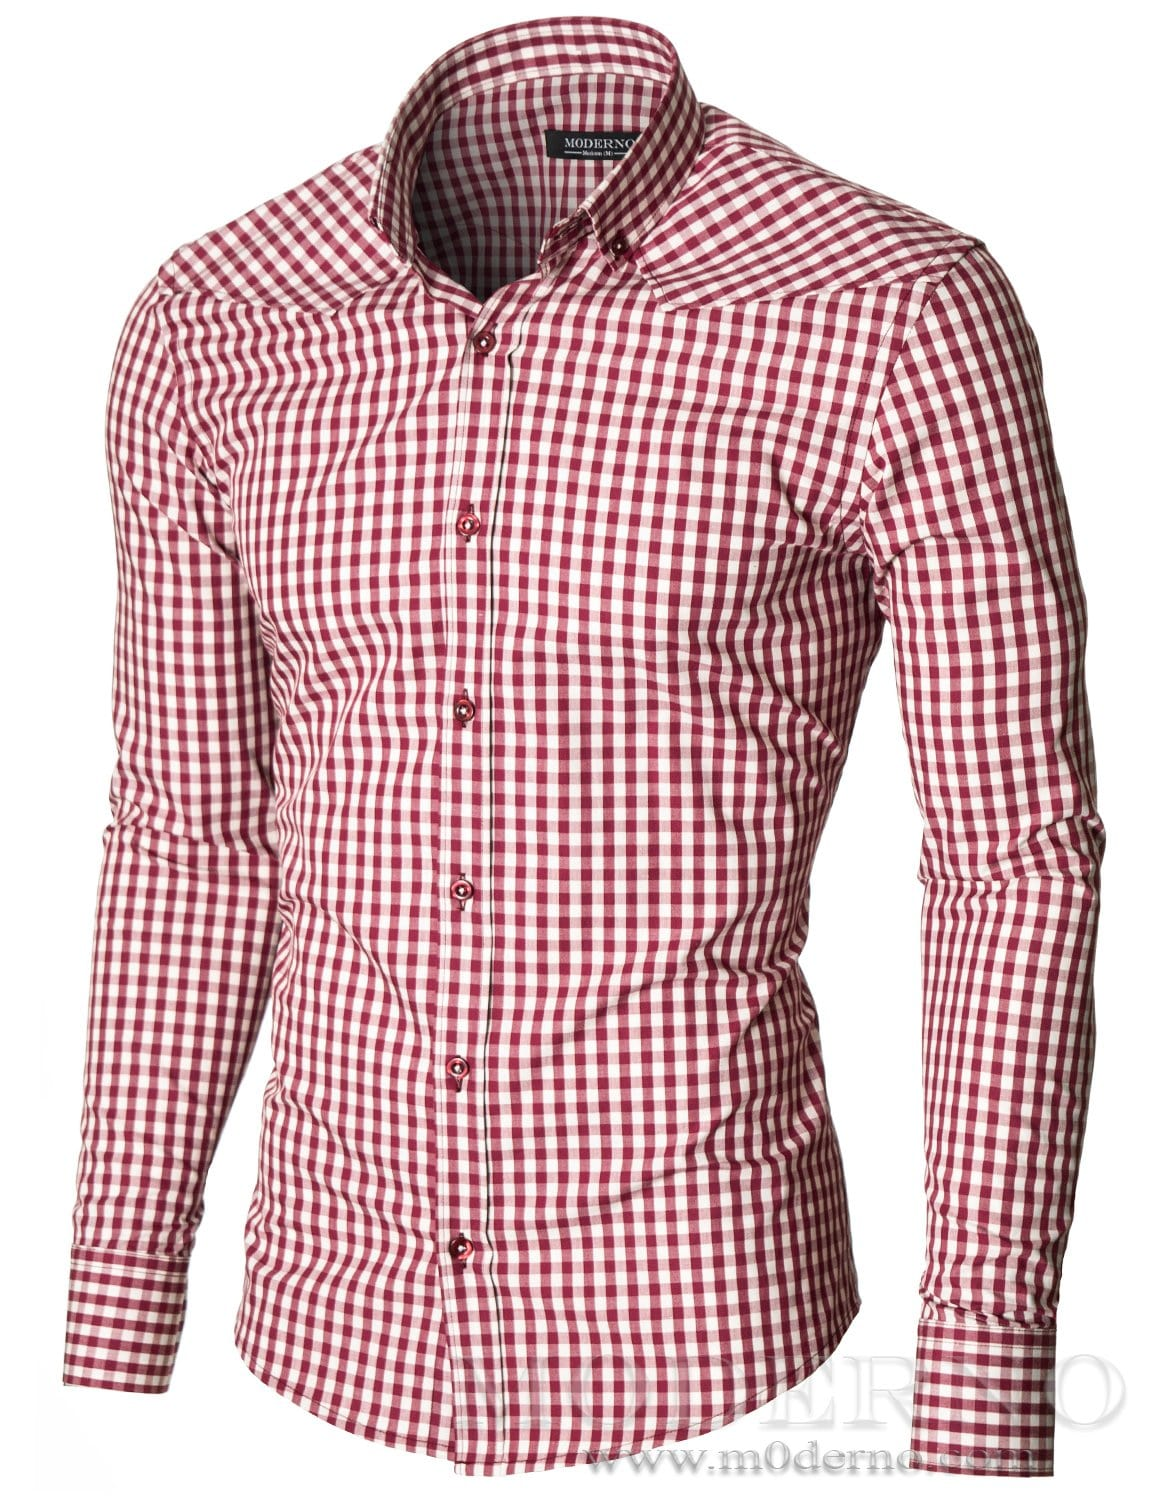 Mens casual checkered shirt red white by moderno for Pink checkered dress shirt